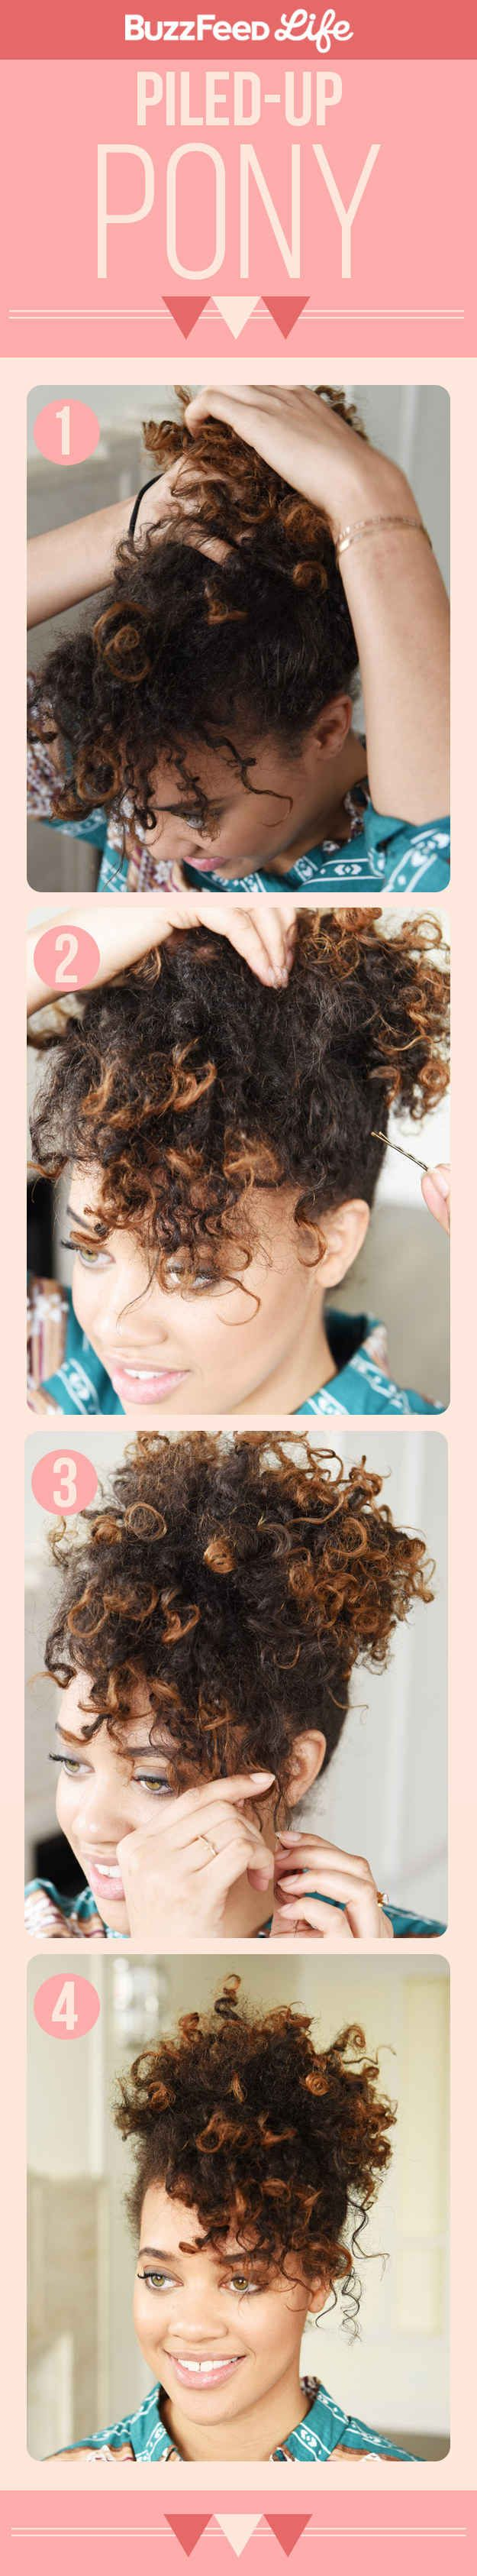 26 Incredible Hairstyles You Can Learn In 10 Steps Or Less Step 1: Gather your hair into a high ponytail, leaving out your bangs or the front pieces of hair. Secure the ponytail with an elastic.  Step 2: Use bobby pins to pin any stray curls or flyaways down toward the ponytail.  Step 3: Tousle your bangs or the front pieces of hair to frame your face.  Step 4: Tousle your ponytail to place your hair exactly the way you want!